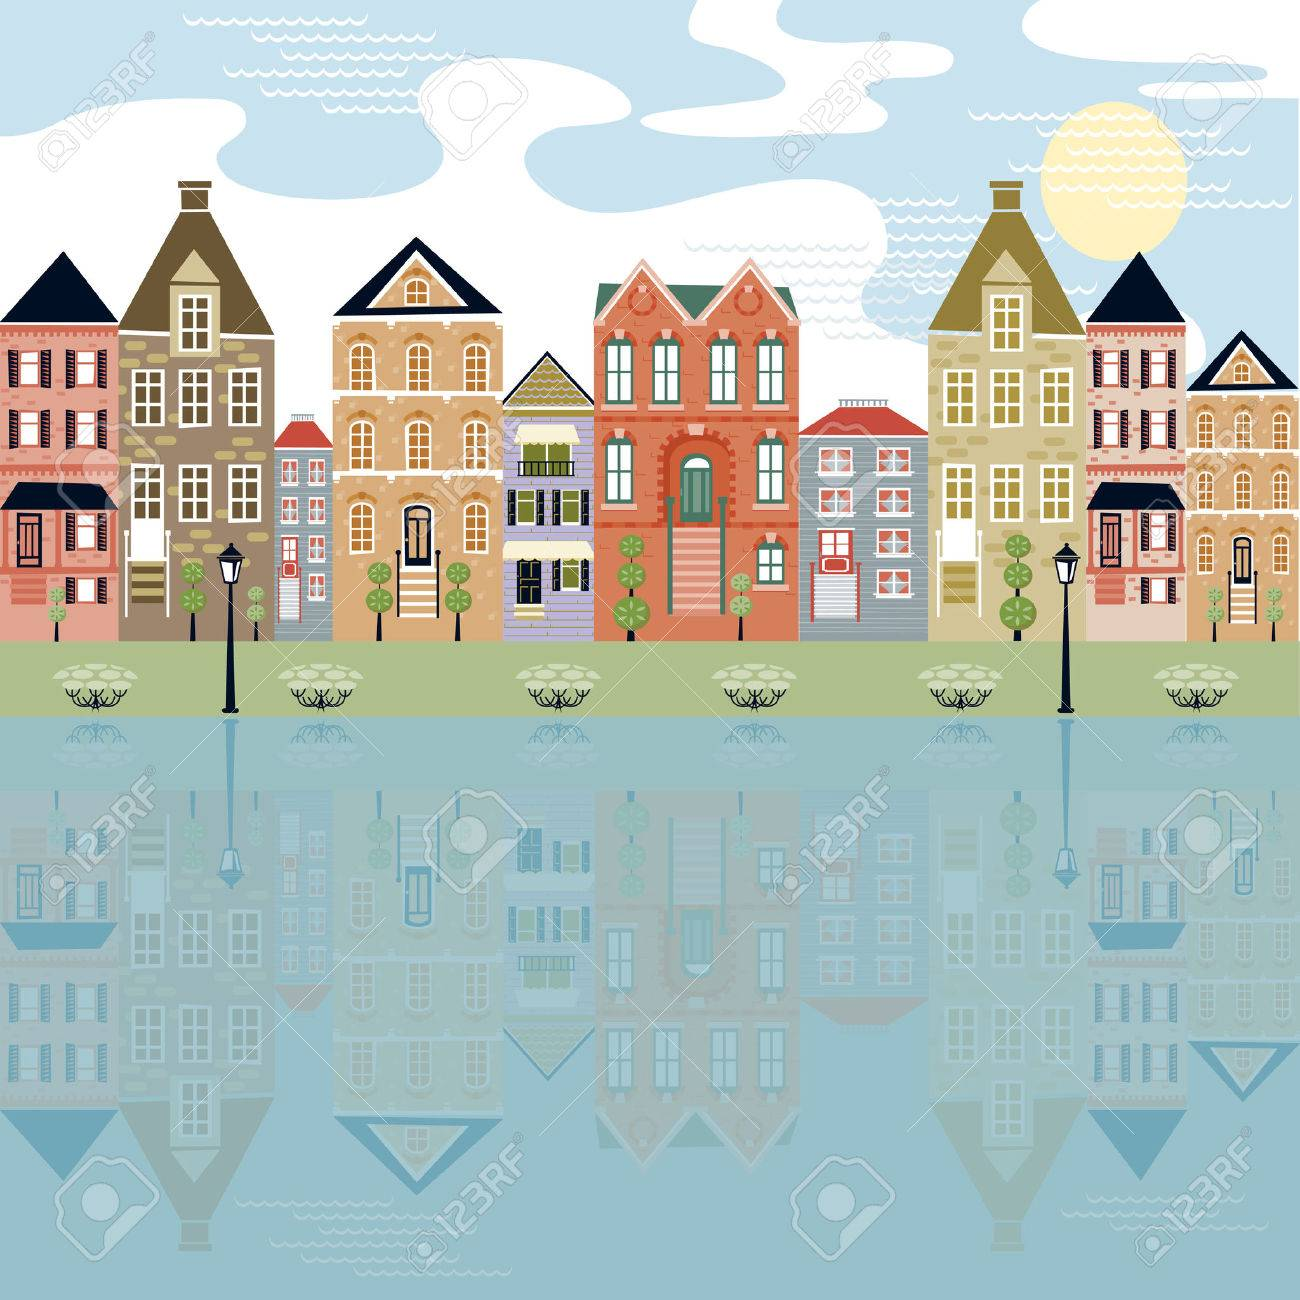 Cityscape on the waterfront with reflection of cute buildings Stock Vector - 4550379